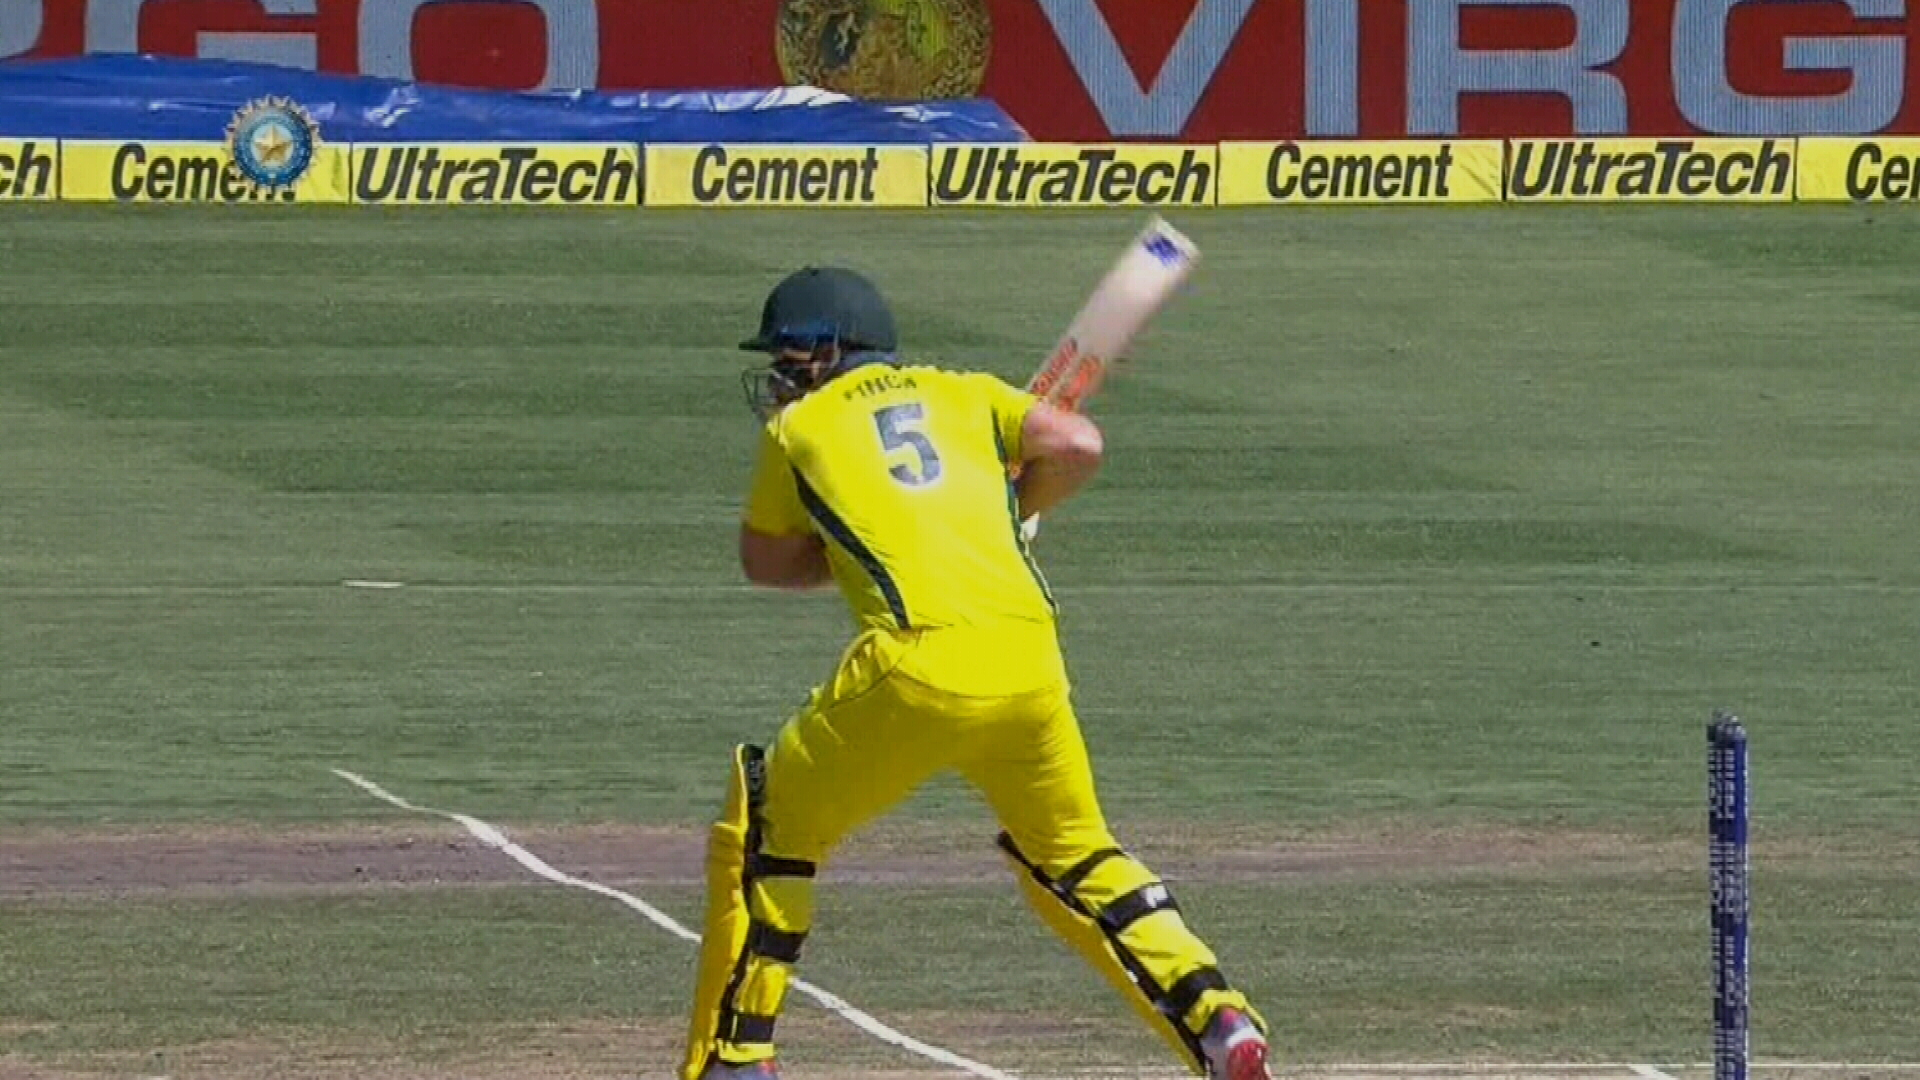 Finch looks to build on big score